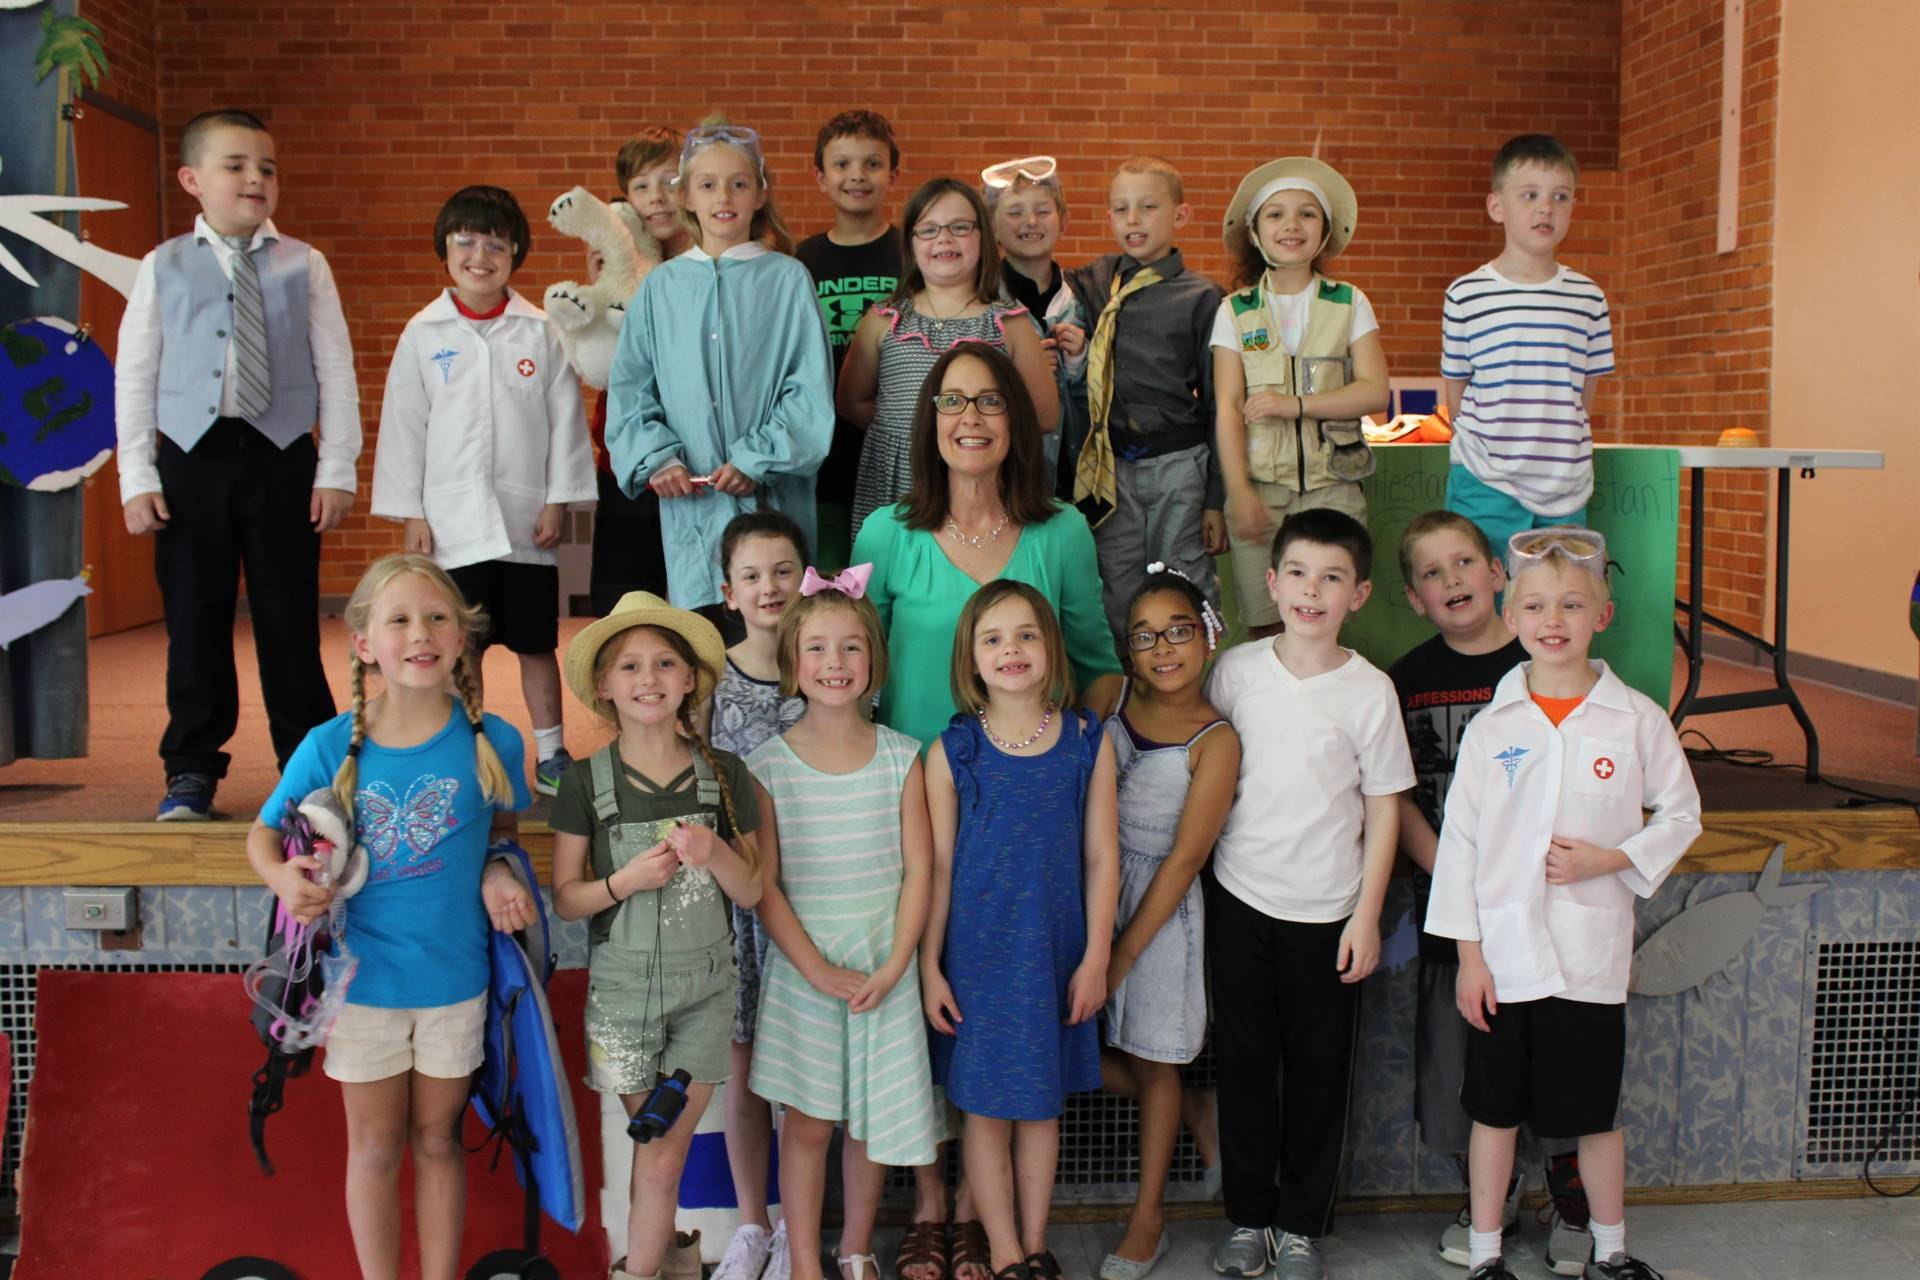 Mrs. Vescovi and the cast of her class play